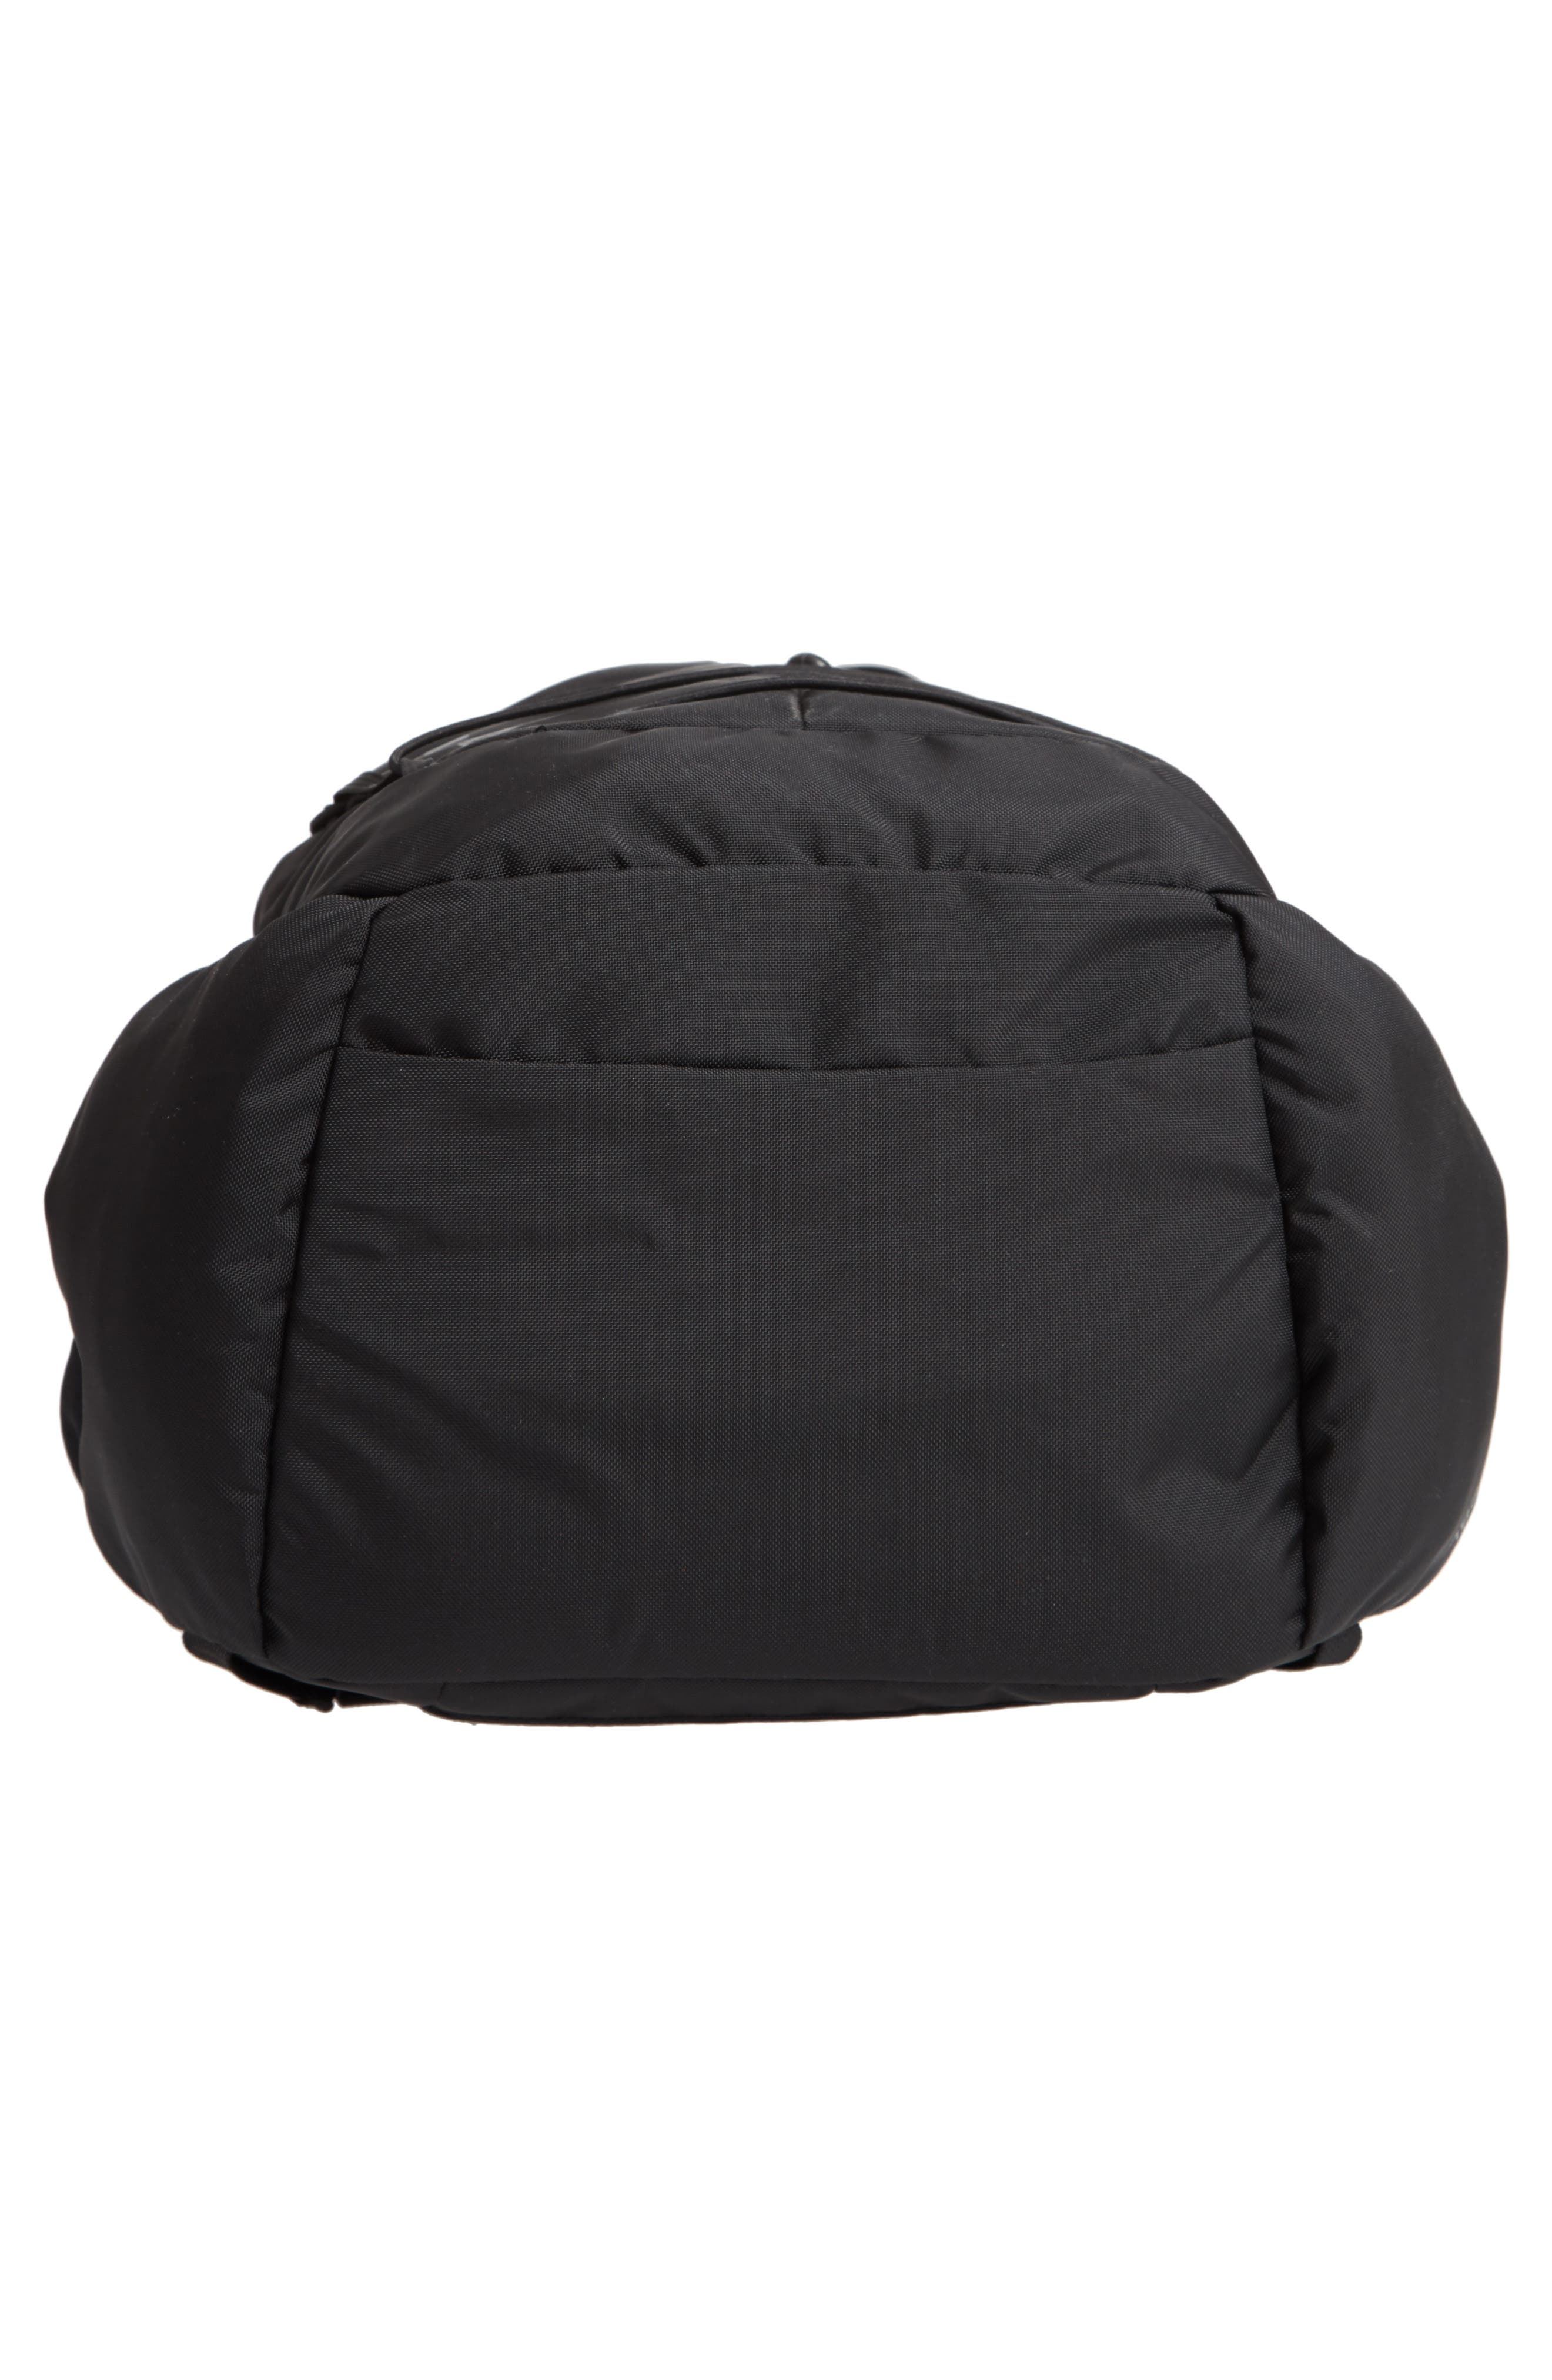 PATAGONIA, 28L Chacabuco Backpack, Alternate thumbnail 7, color, 001